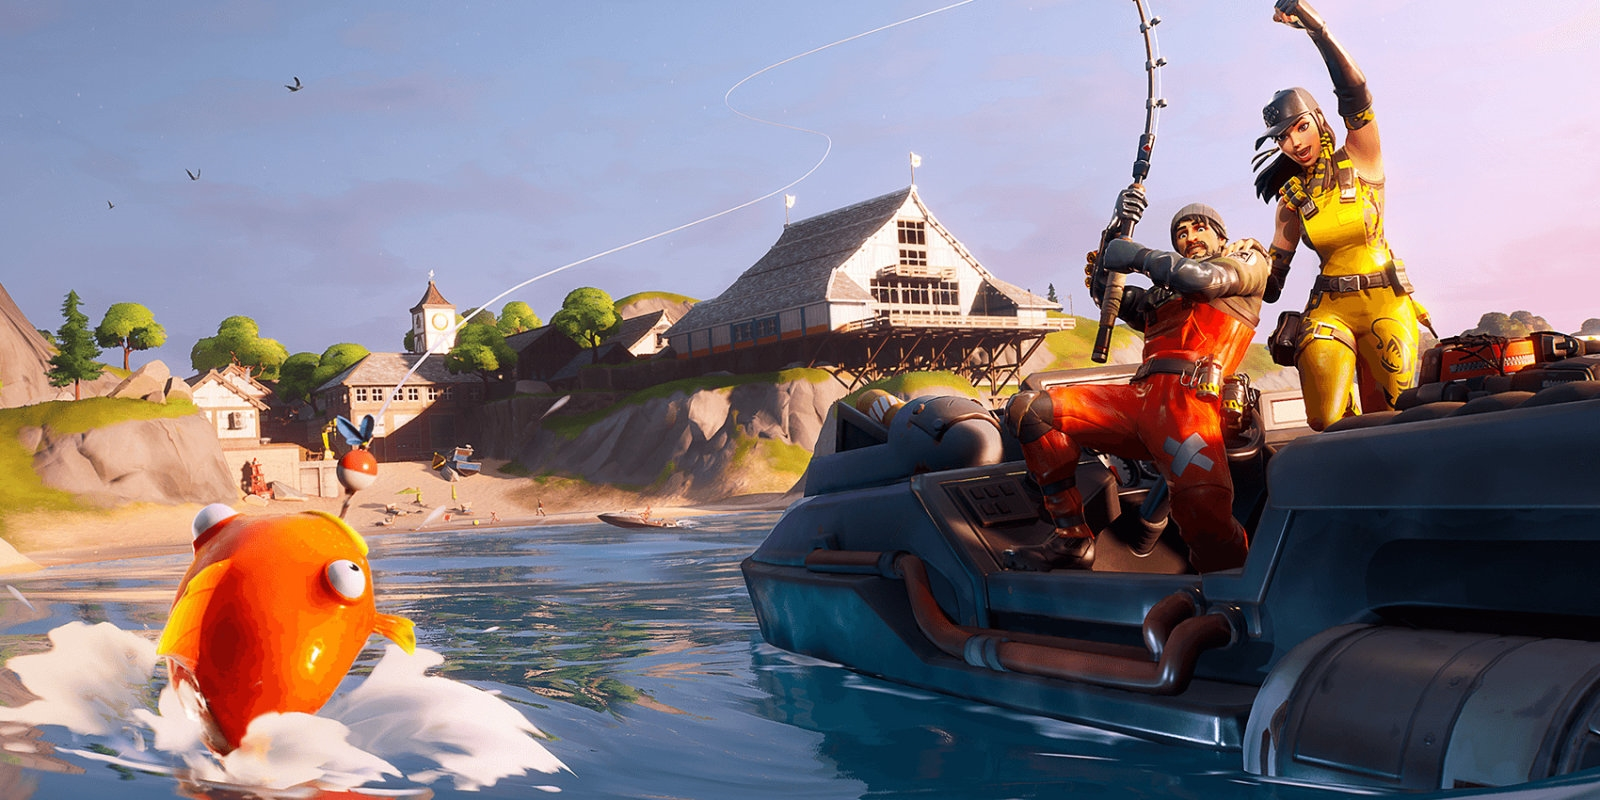 Epic extends the current 'Fortnite' season to focus on holiday updates | DeviceDaily.com